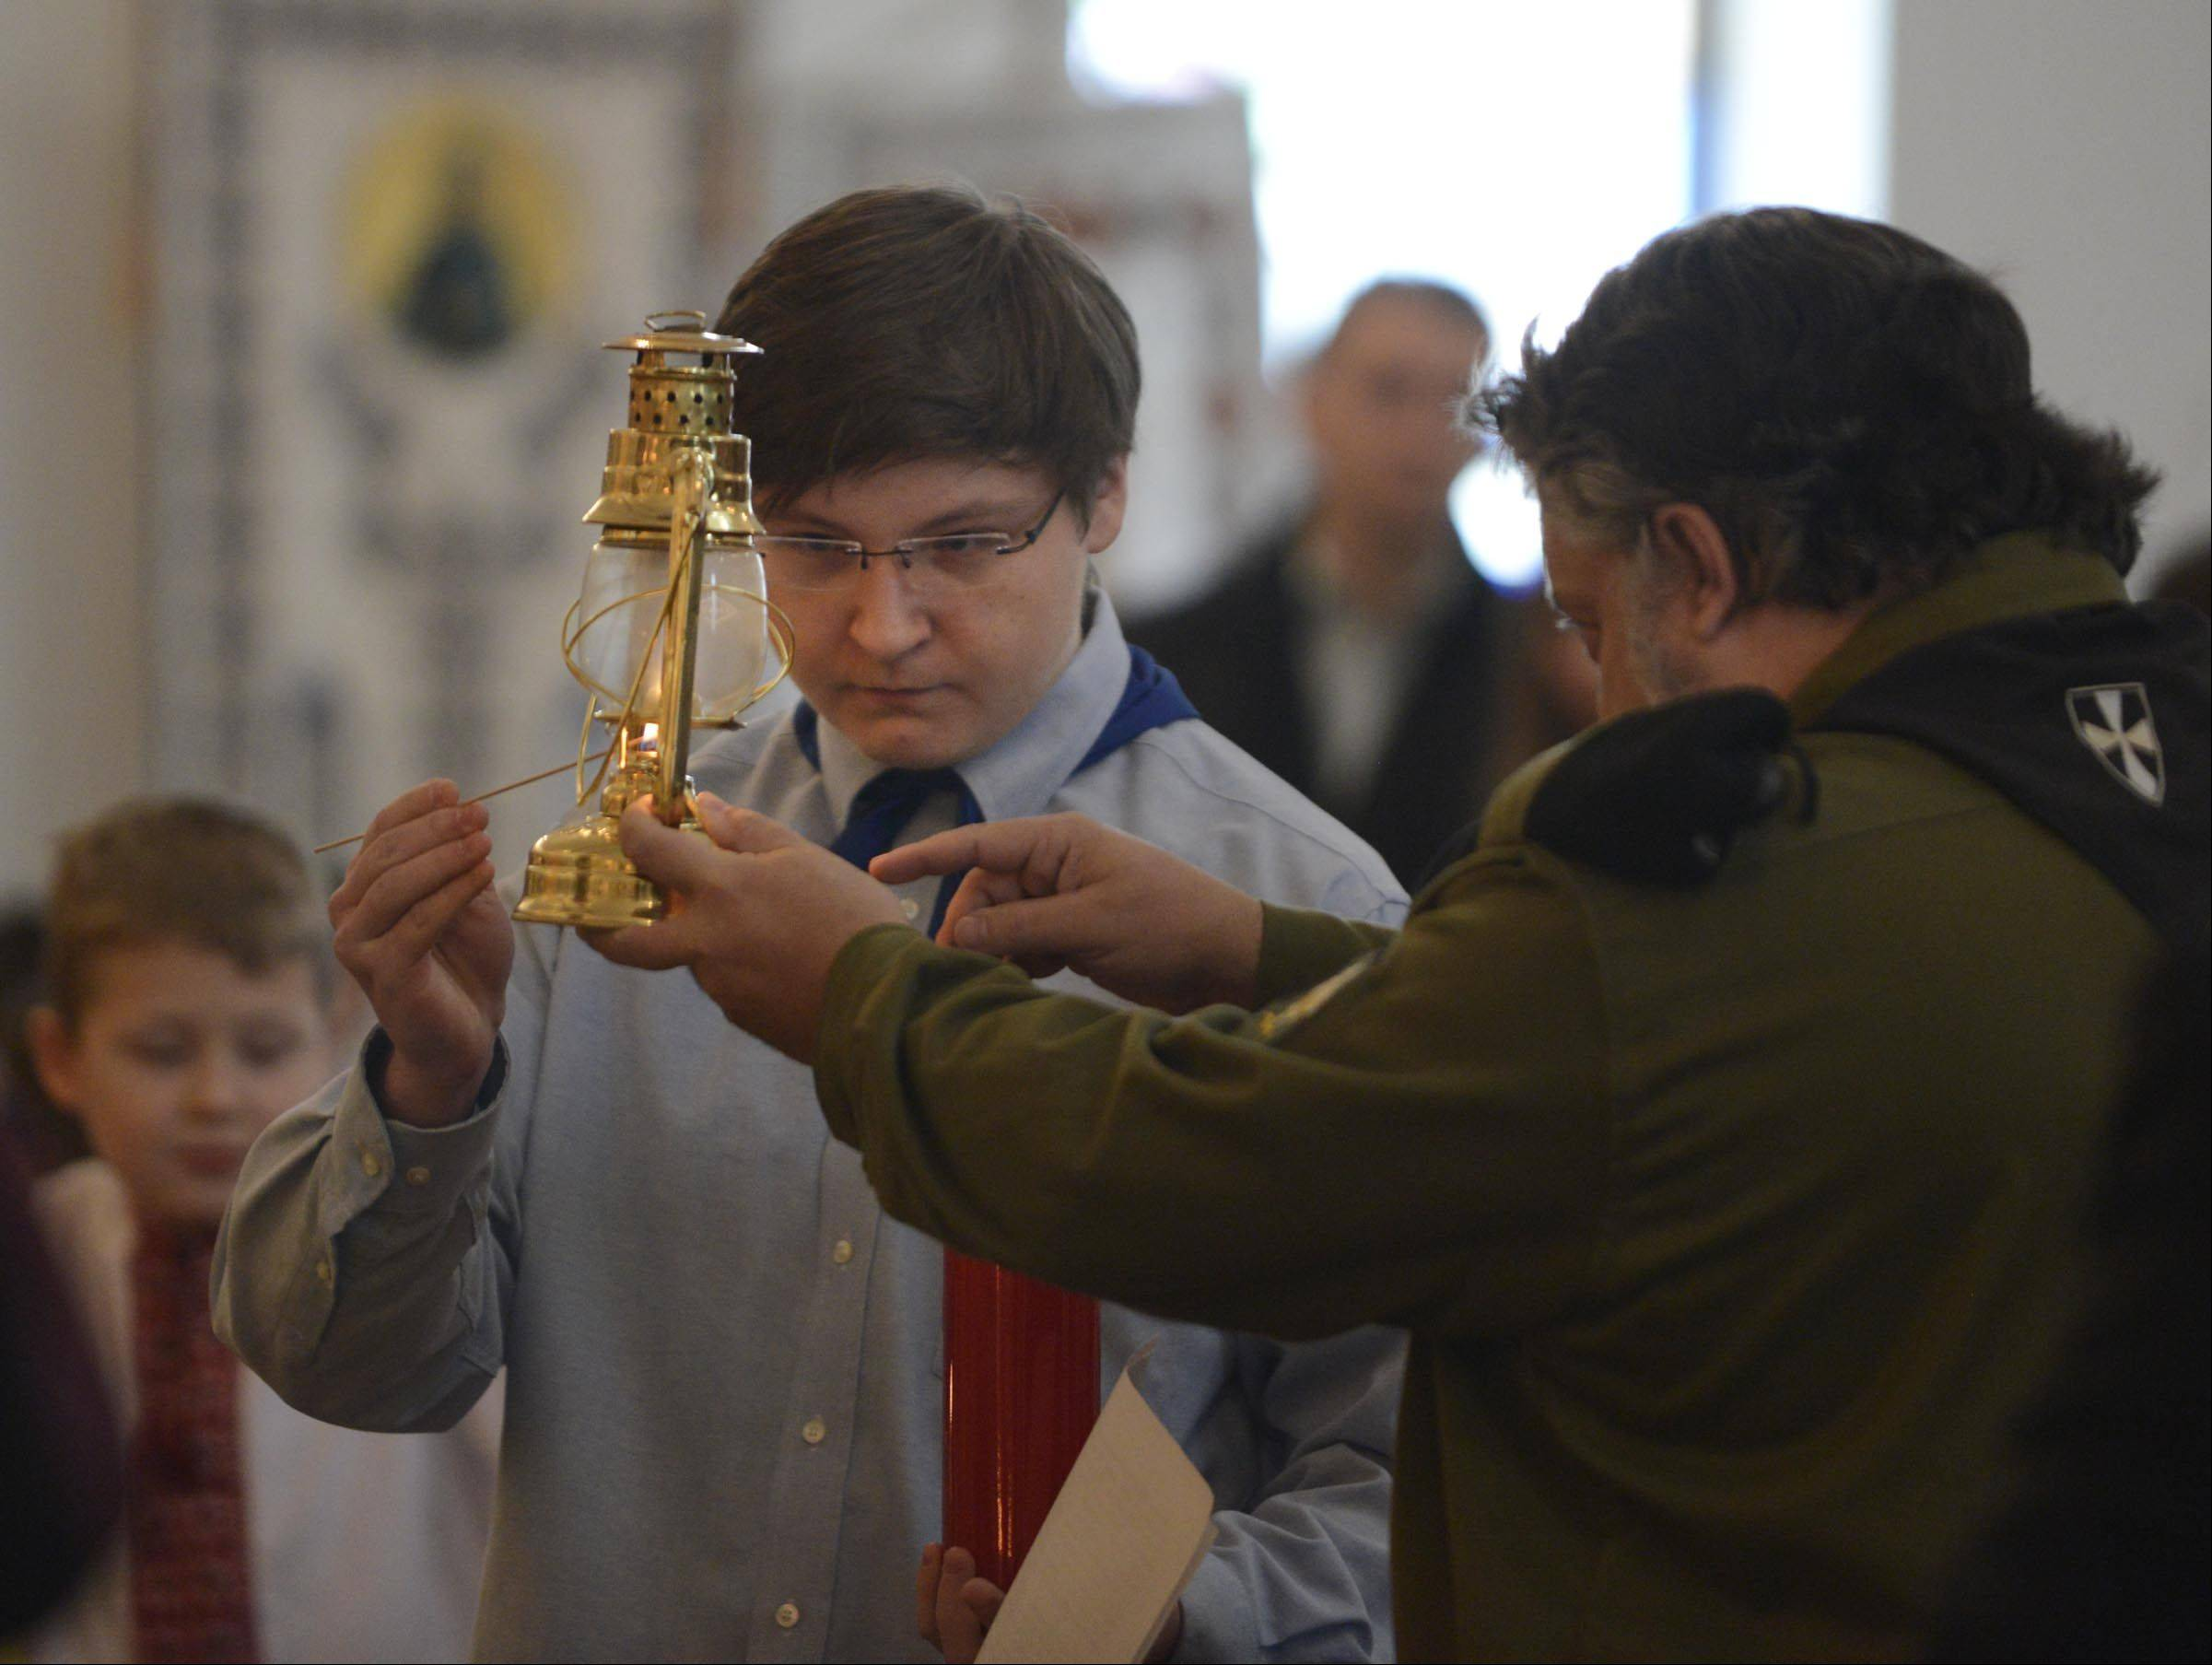 Ukrainian Scout leader Yuriy Zajac shares a flame Sunday from the birthplace of Jesus in Bethlehem with Simon Mischenko of the Ukrainian Democratic Youth Organization at St. Andrew Ukrainian Orthodox Cathedral in Bloomingdale. The Bethlehem Peace Light has been burning at the same spot in Bethlehem for more than 1,000 years and is split and travels around the world, available to anyone who wants to take the flame during the holy time around Christmas.